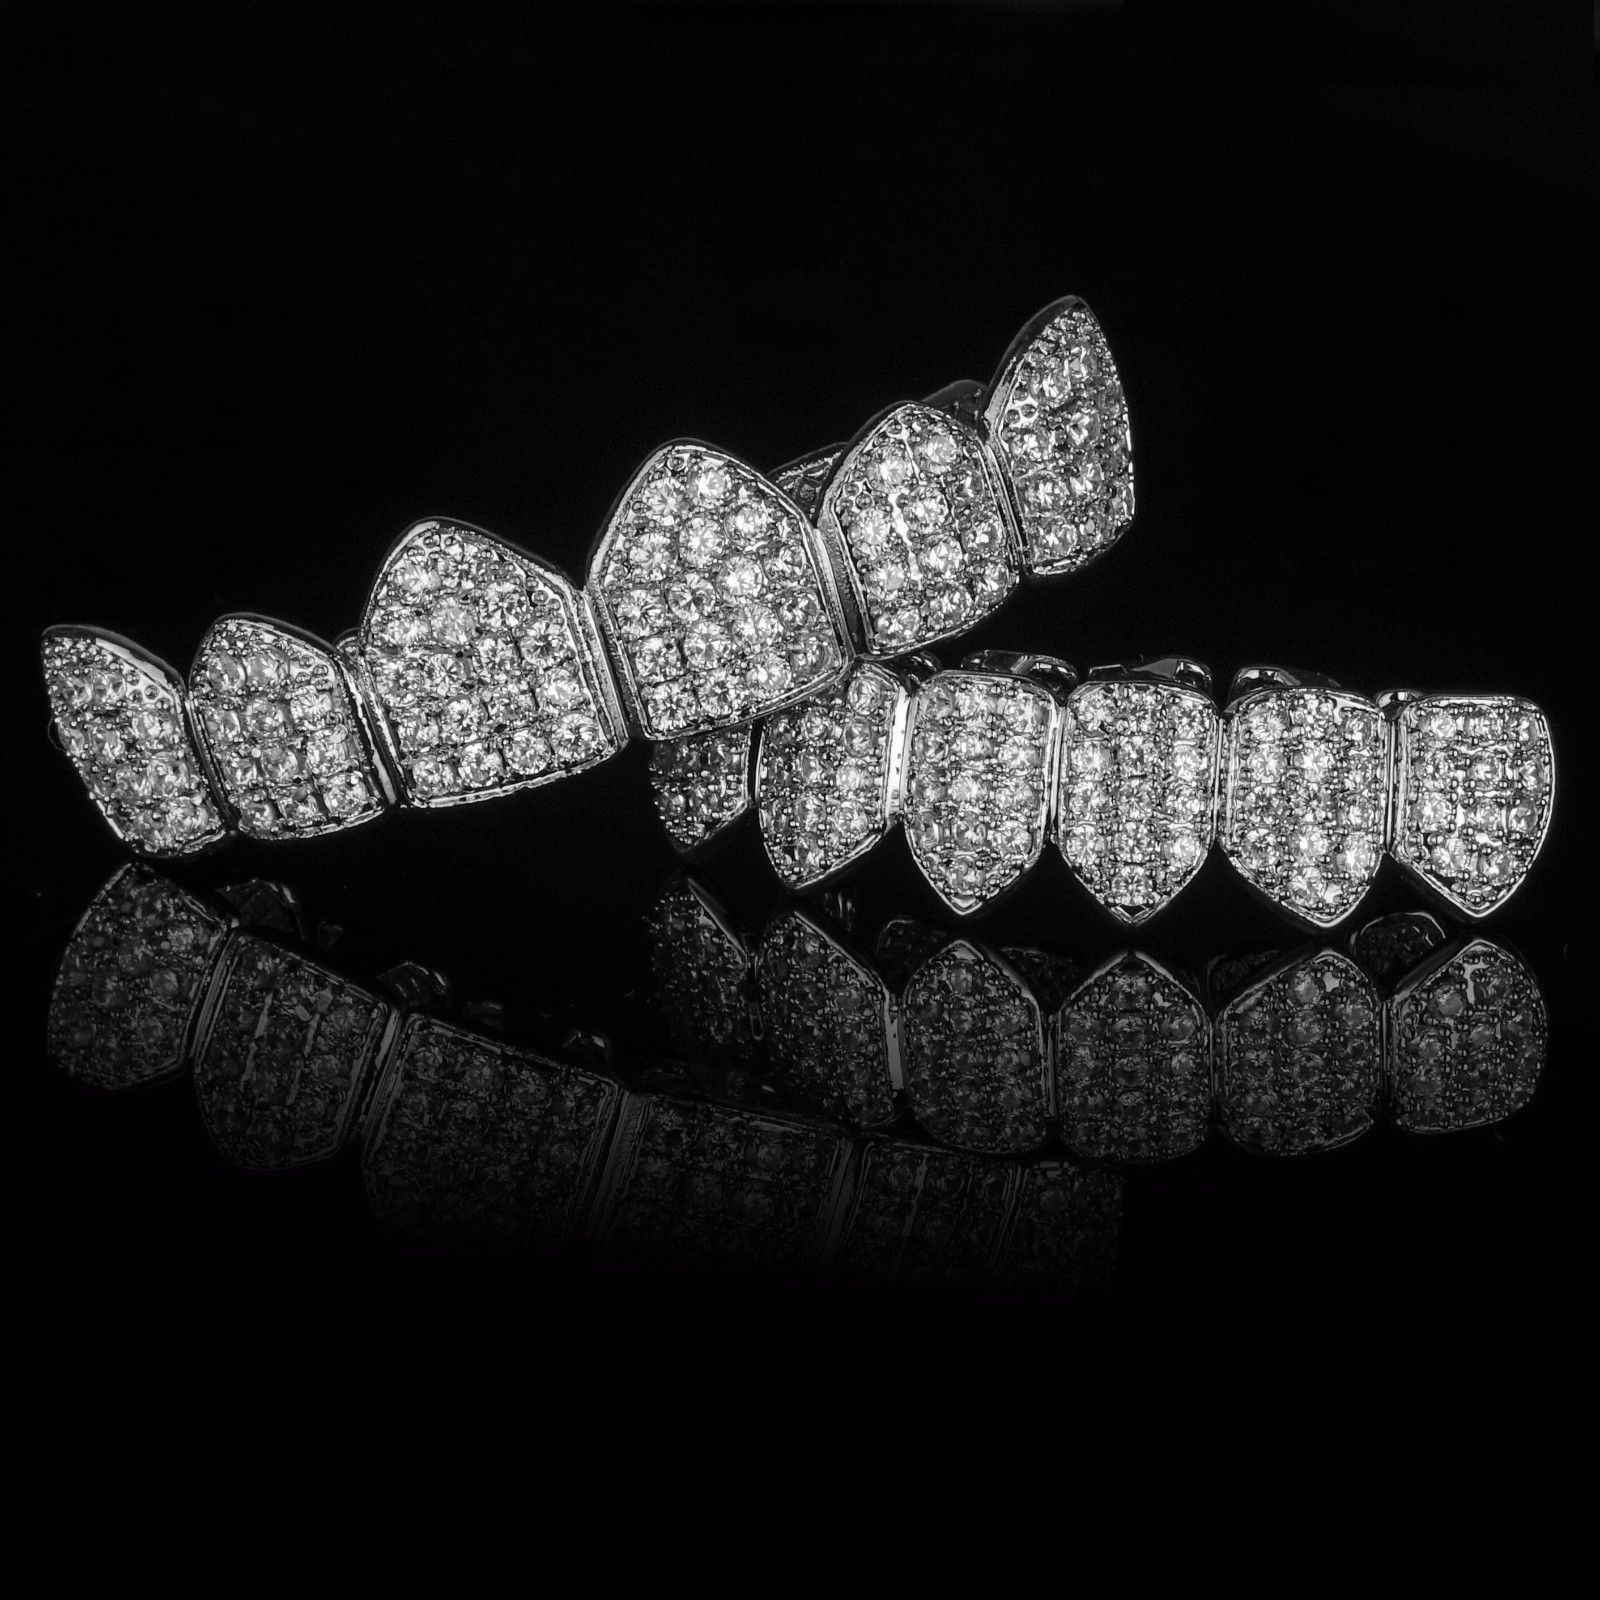 Silver Plated Cz Top Bottom Grillz Mouth Teeth Grills Grills Teeth Grillz Gold Grillz